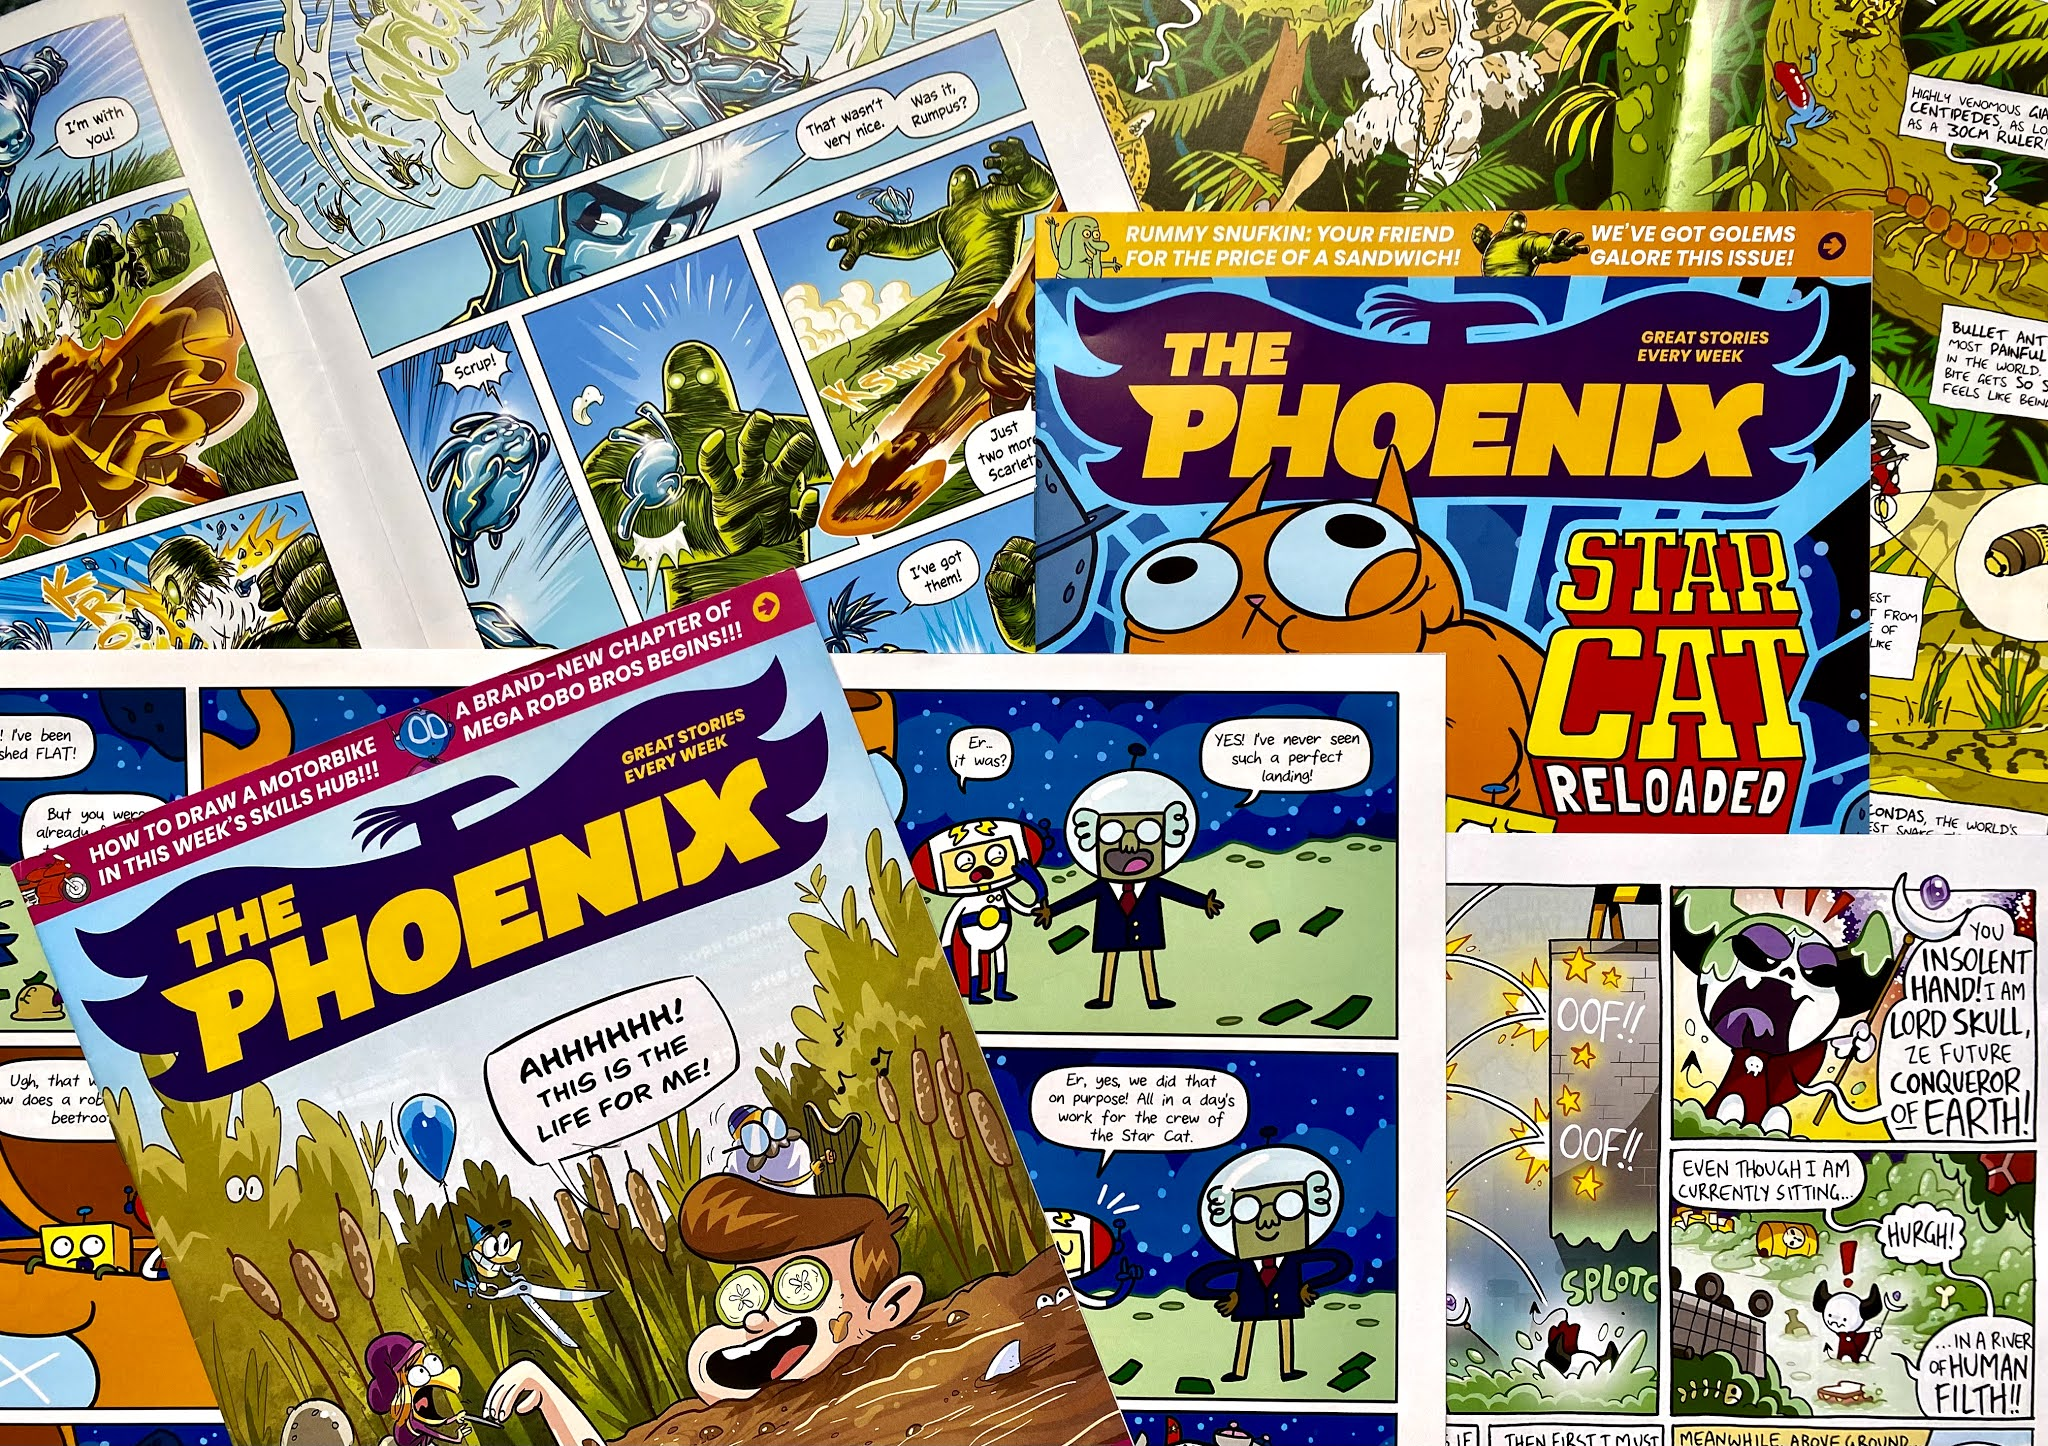 A number of issues of The Phoenix comic including open copies to show examples of the stories